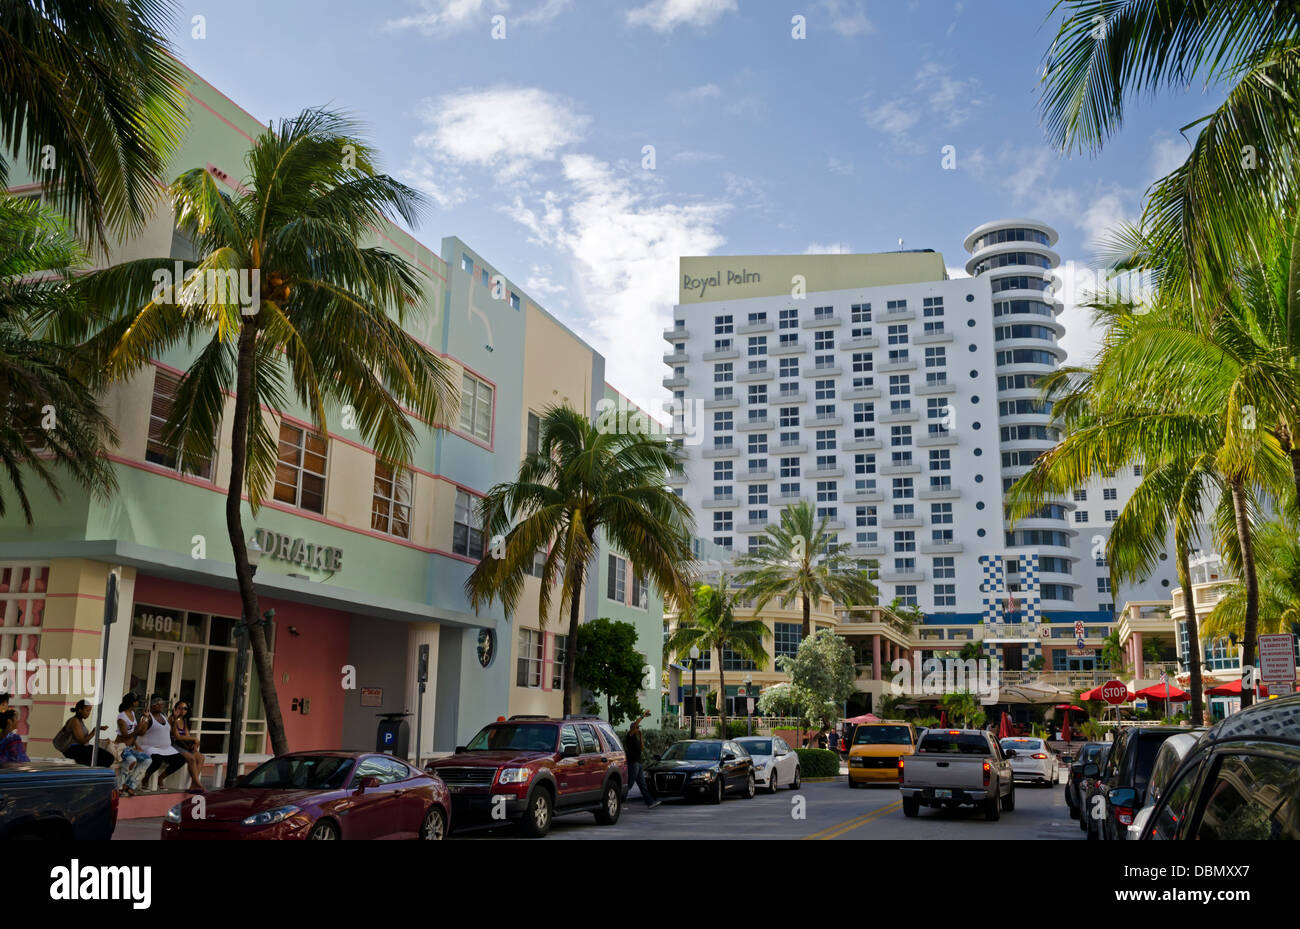 Art deco restaurants and hotels of ocean drive in south beach miami florida royal palm and the drake hotels can be seen